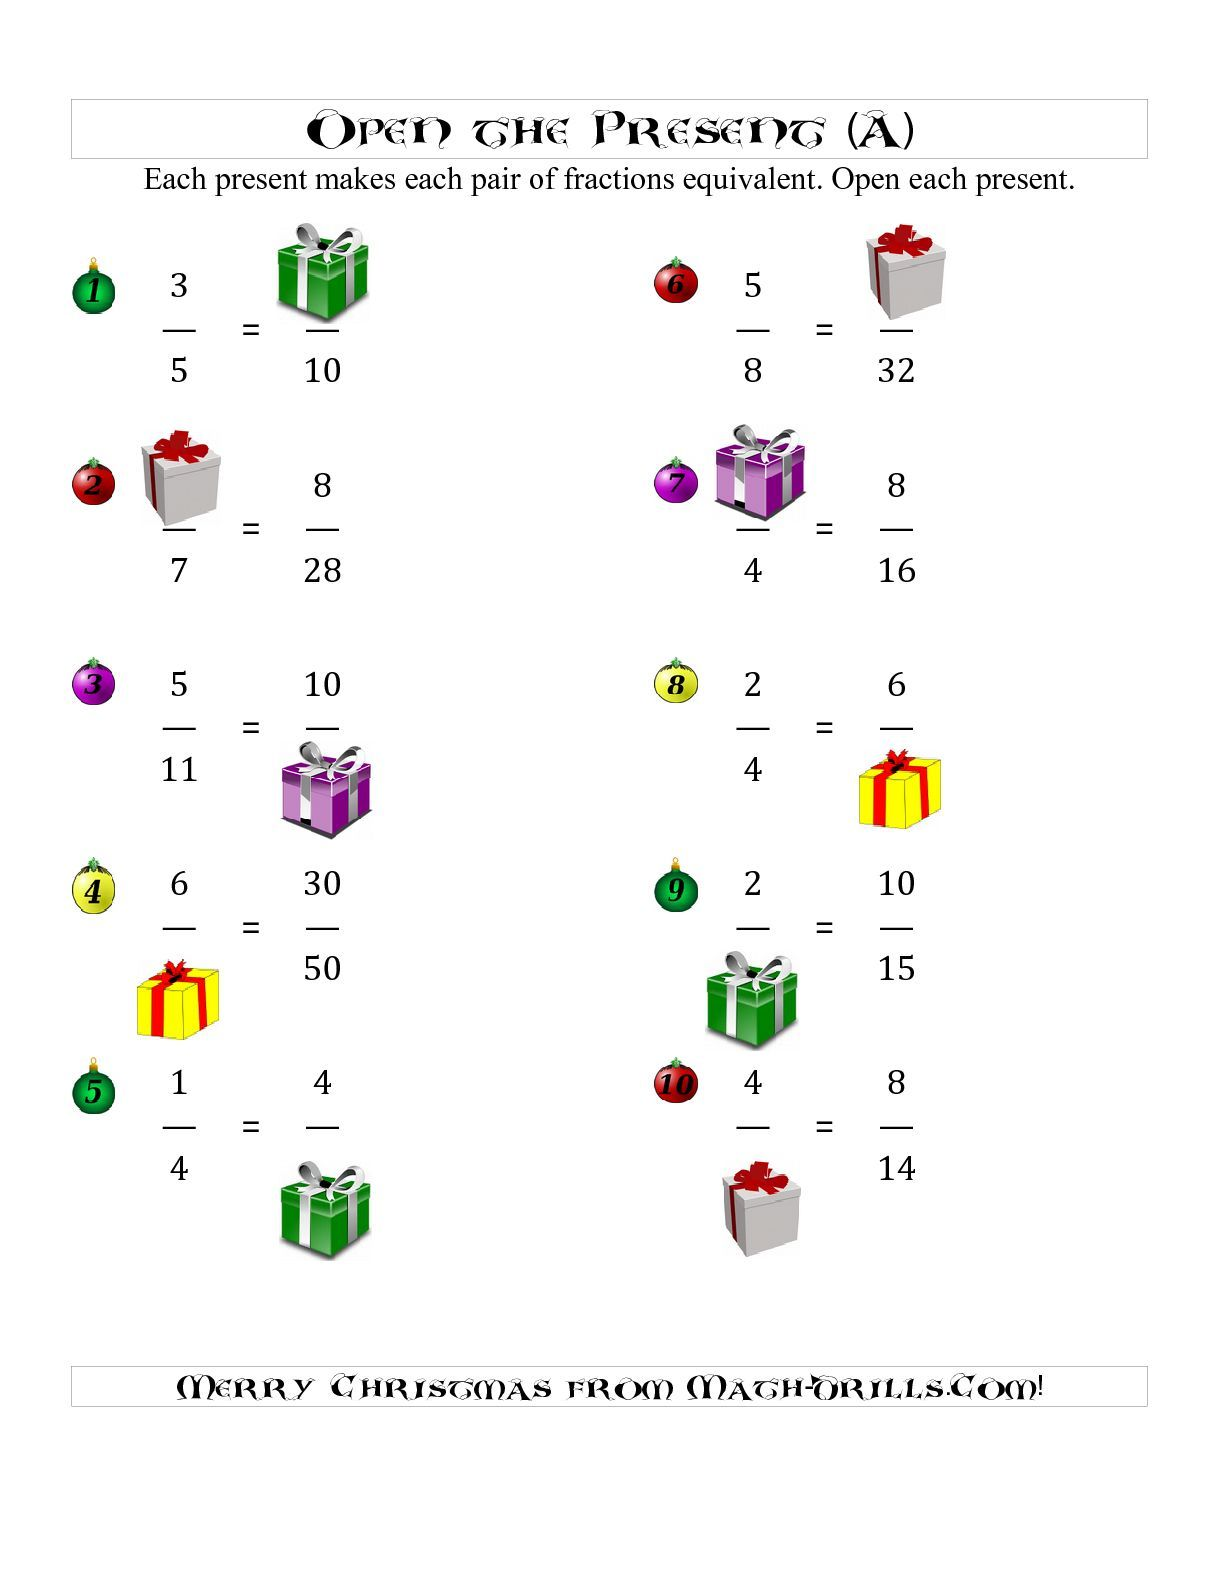 The Open the Present Equivalent Fractions (A) math worksheet from ...